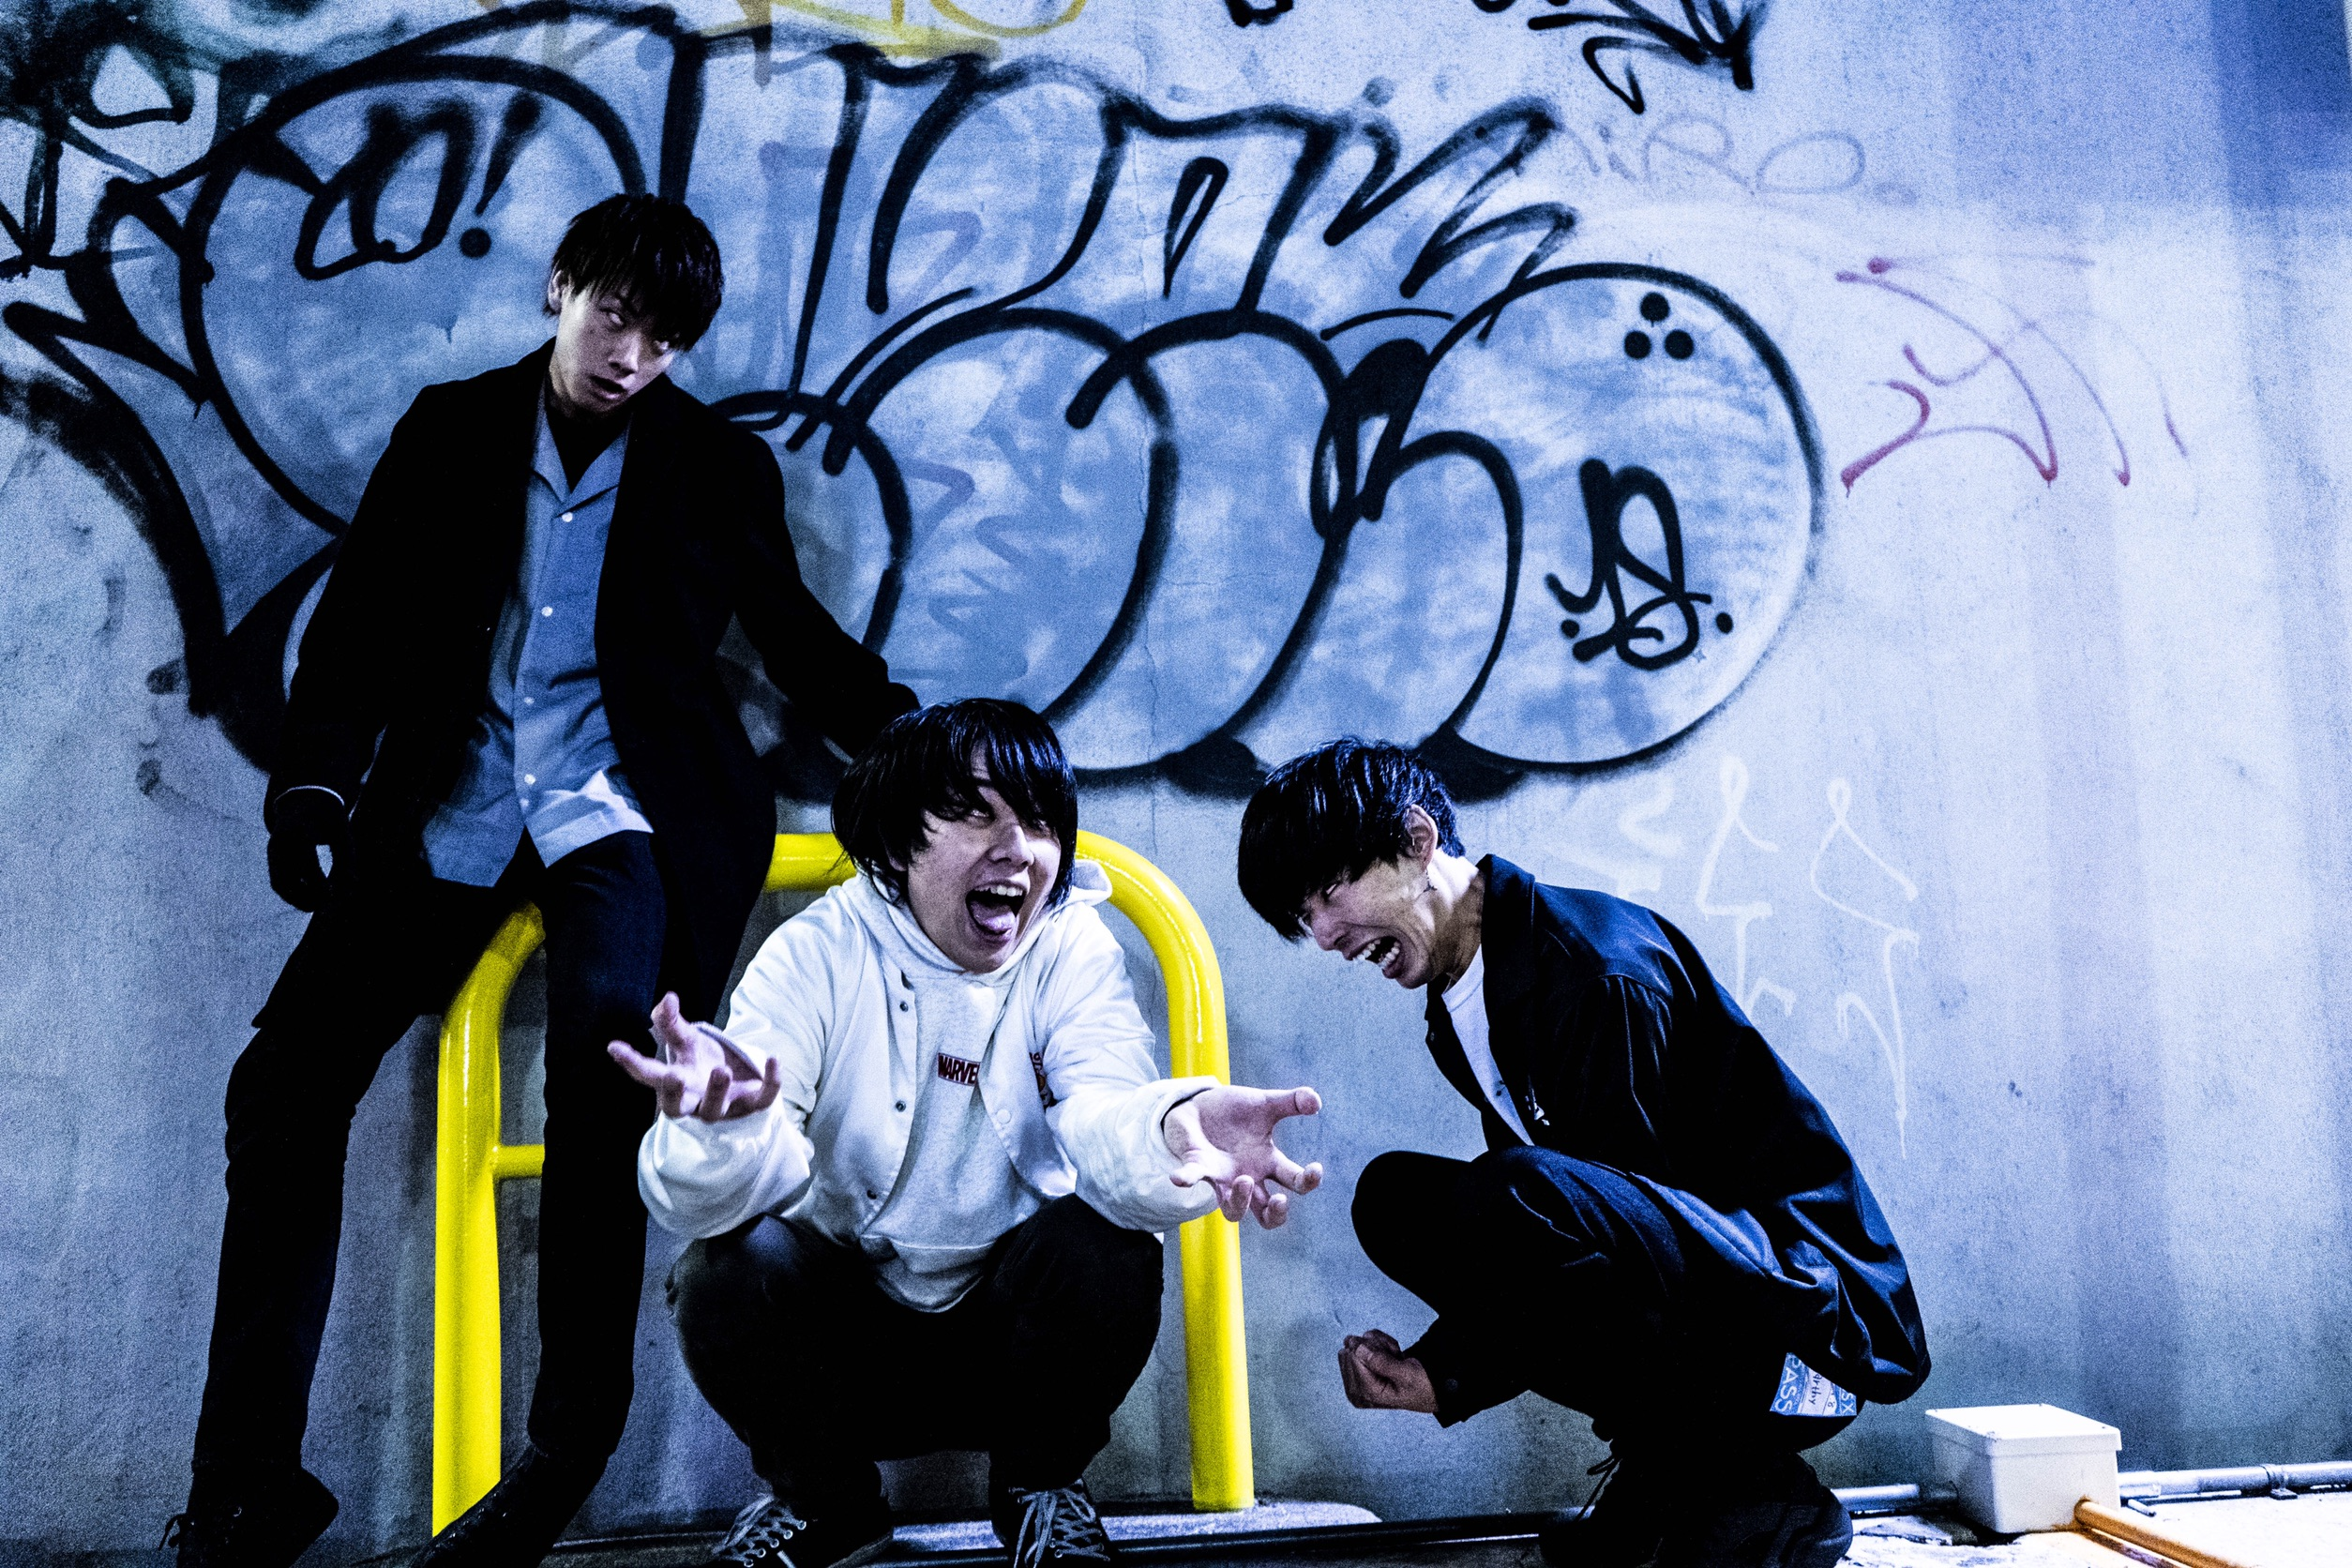 Earthy 2nd demo 「We are boys forever」release tour -でらロックフェスティバル2020延長戦-